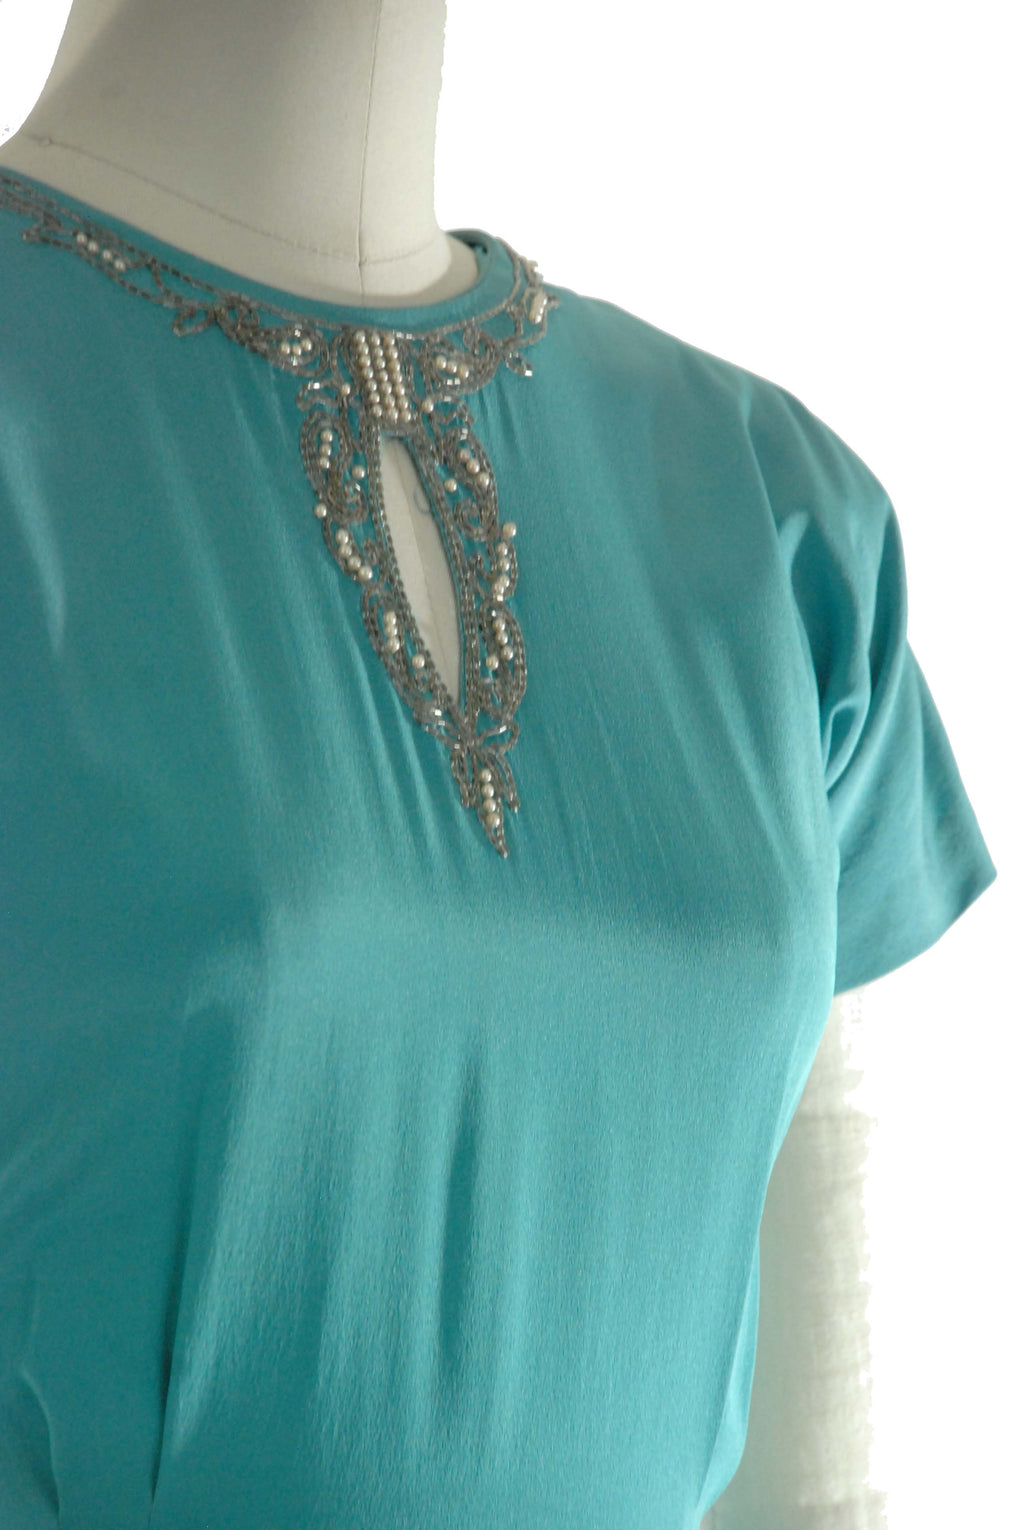 Vintage 1940s Dress by DuBarry Brilliant Turquoise Rayon Crepe with Beaded Keyhole Neckline